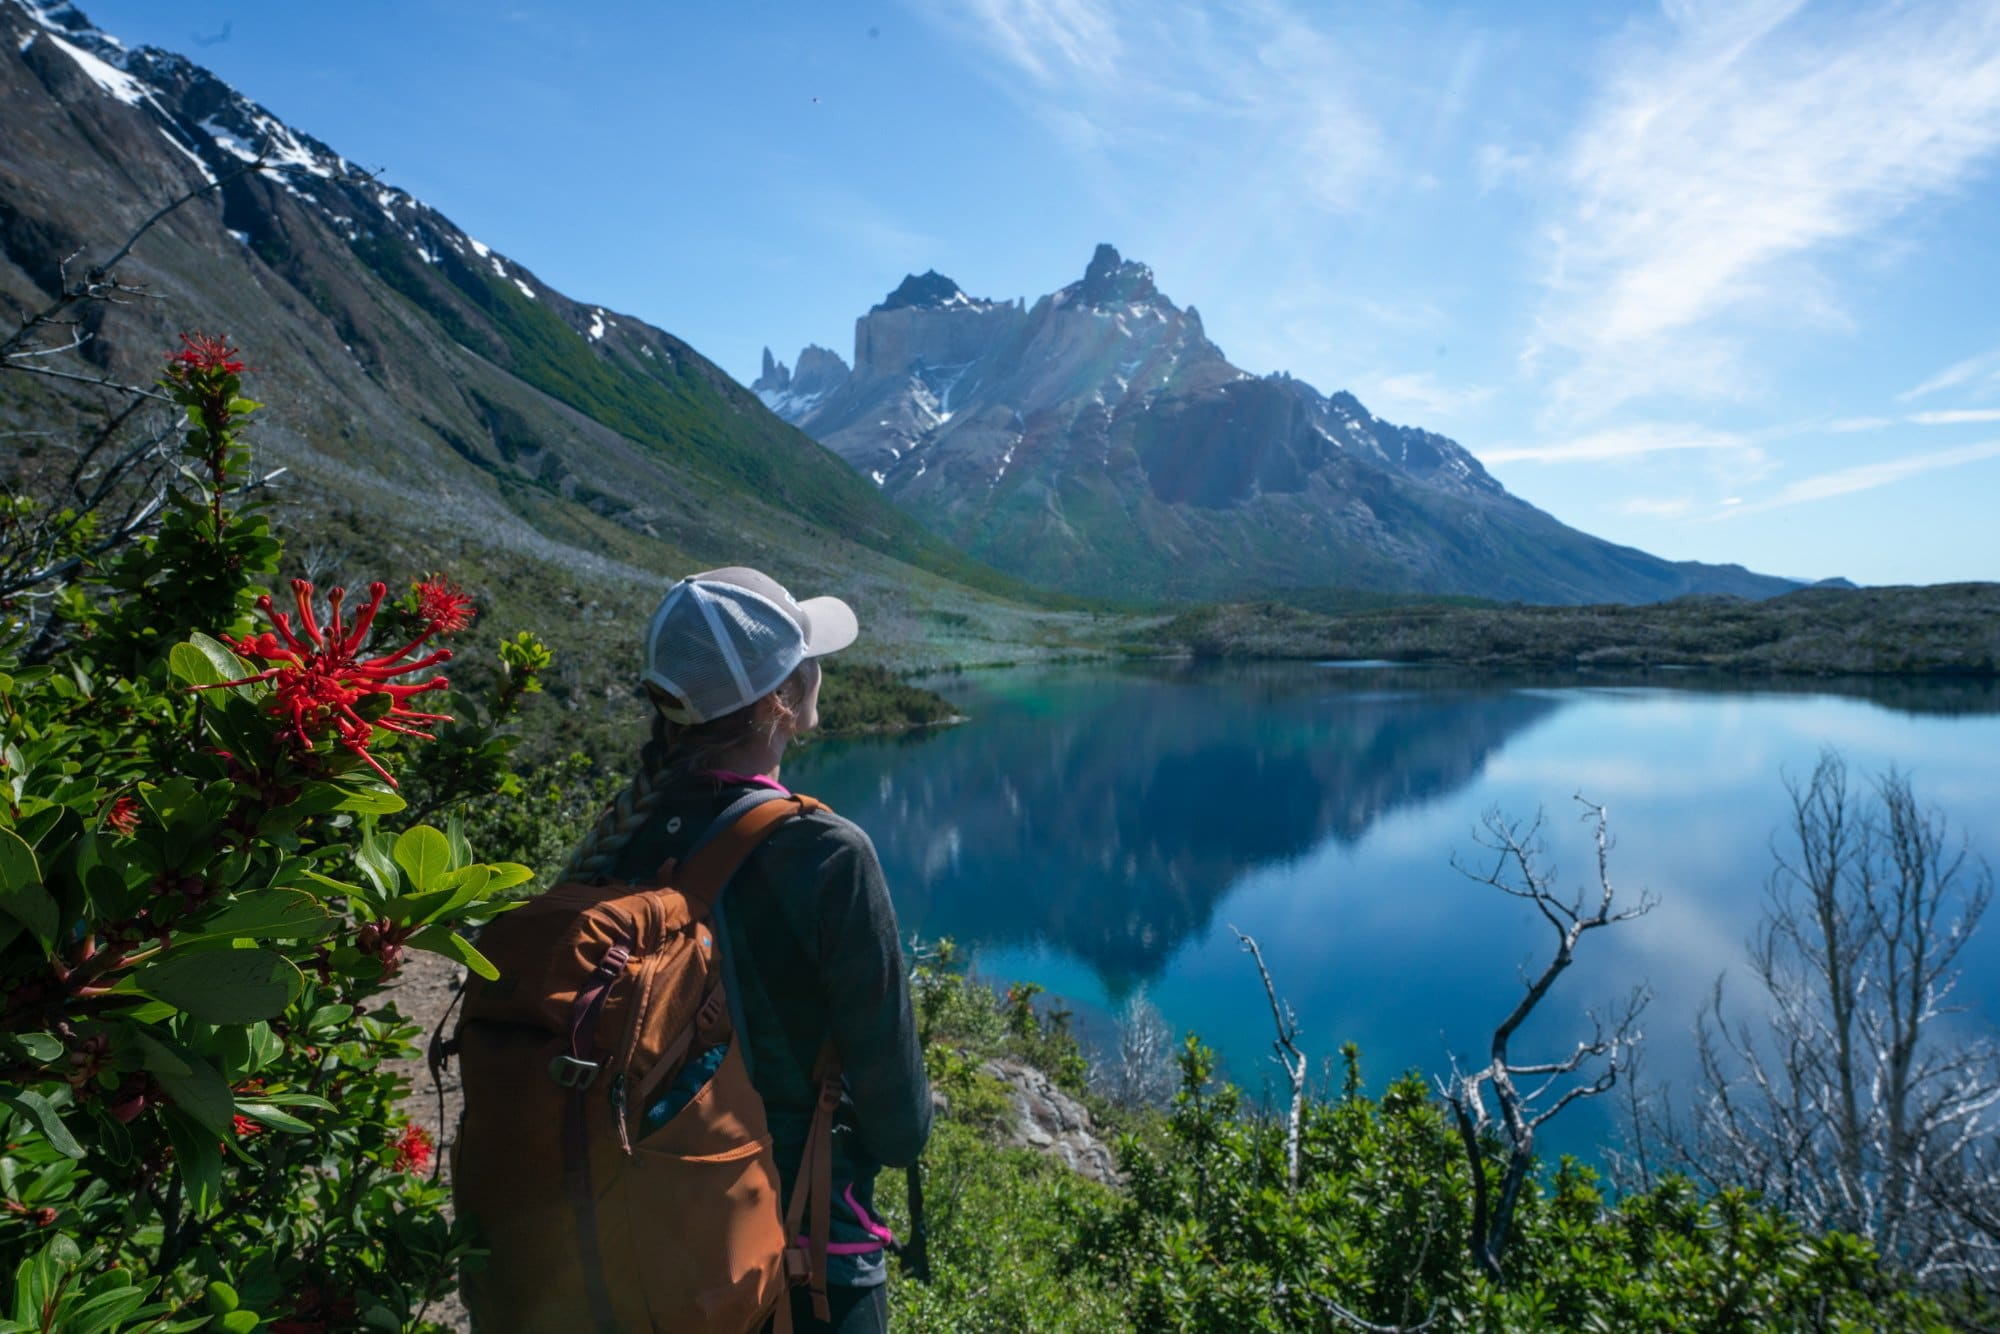 Want to hike the W Trek in Torres Del Paine? We answer all of your questions about itineraries, gear, campsites, and whether a guide is necessary.